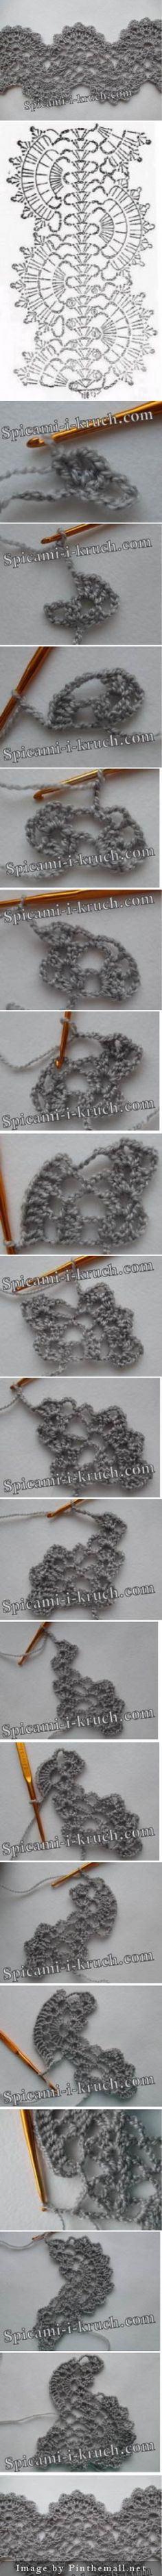 Crochet lace tape shells & scallops Every step included ~~~ Source: http://spicami-i-kruch.com/sharfik-iz-lentochnogo-kruzheva/